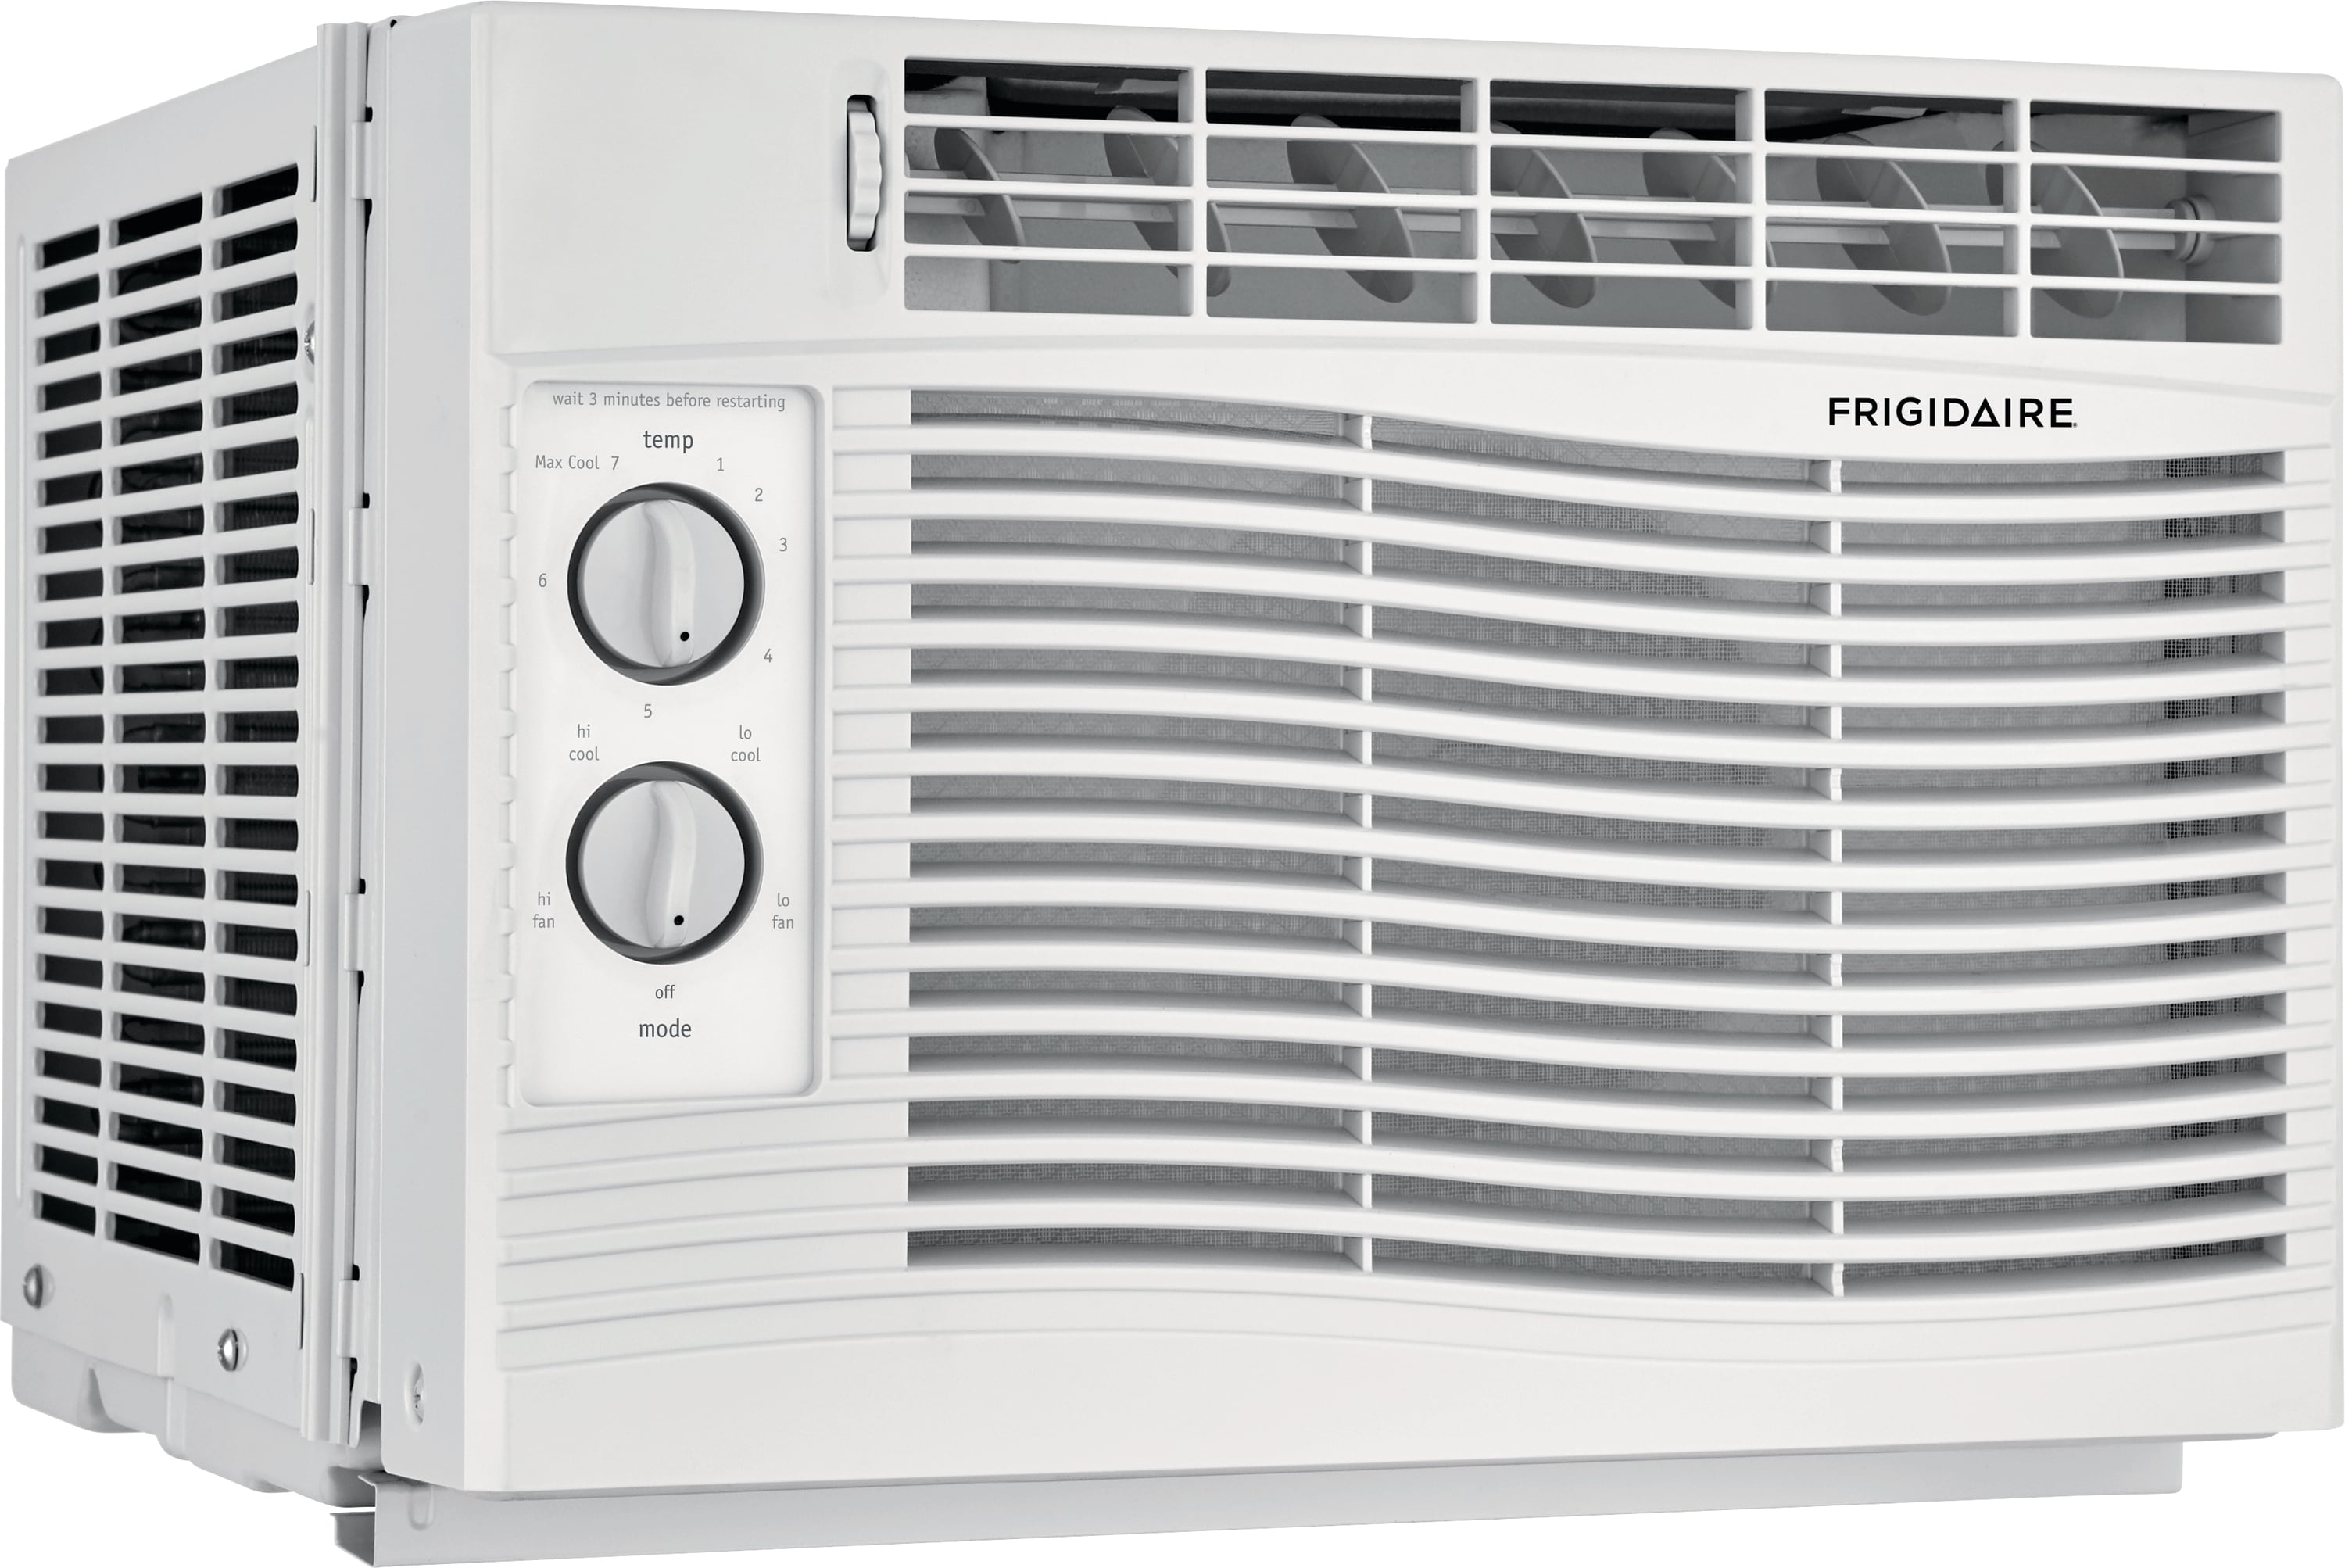 Frigidaire - FFRA0511UE - 5,000 BTU Window-Mounted Room Air